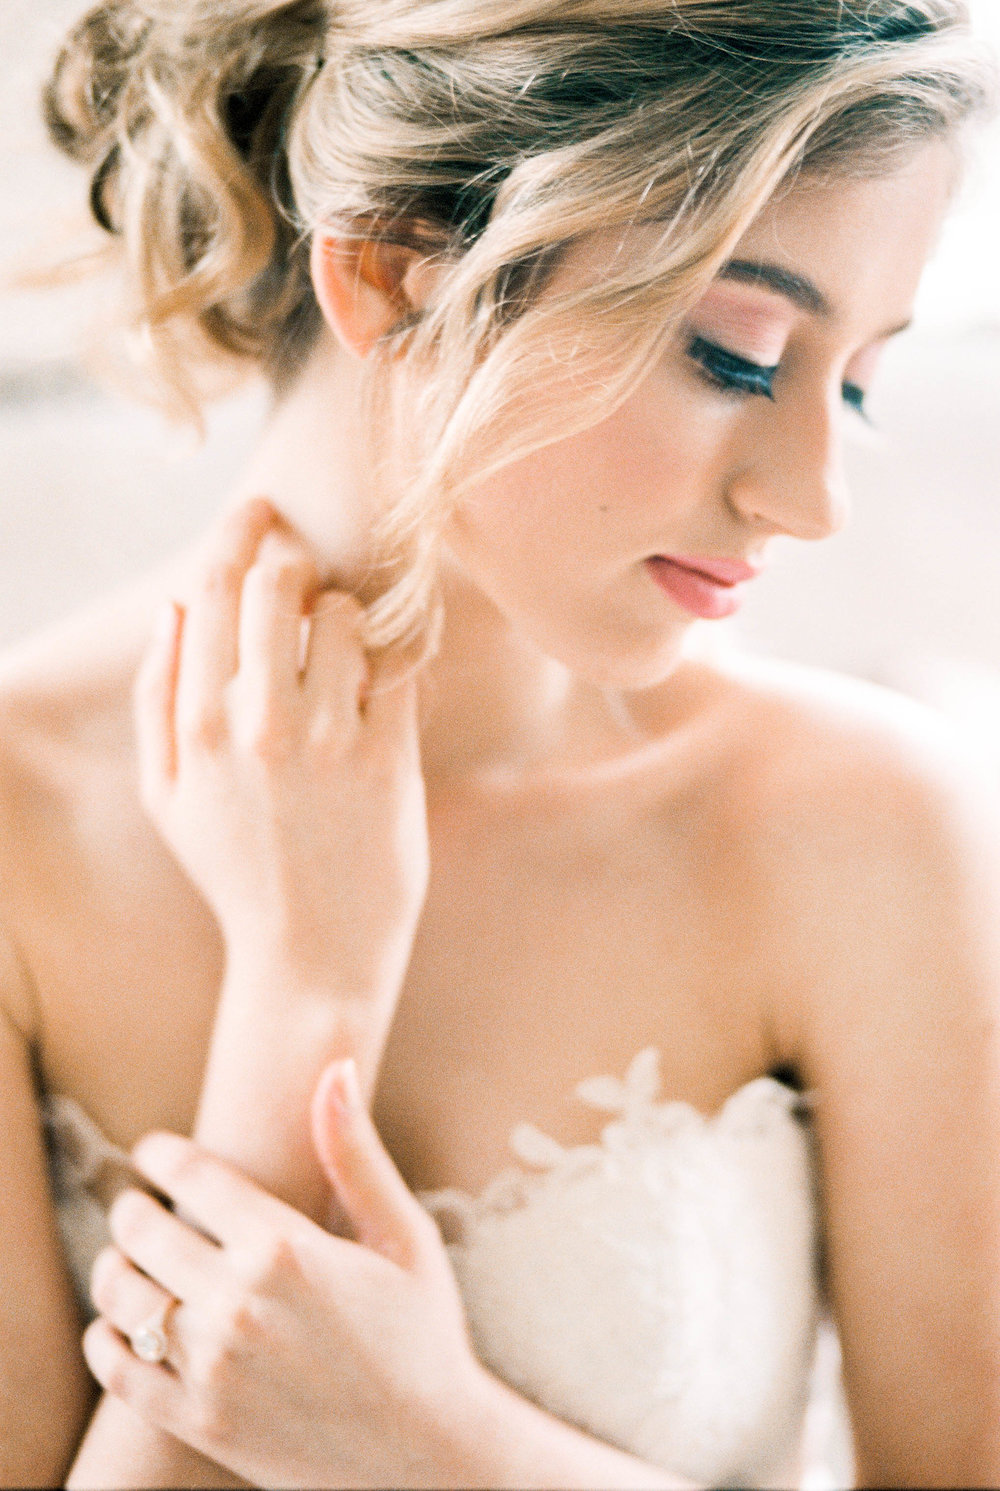 Pantone Colors Rose Quartz Serenity Wedding Inspiration | Wedding Wise Seattle | Rainier Chapter House Wedding | Kerry Jeanne Photography